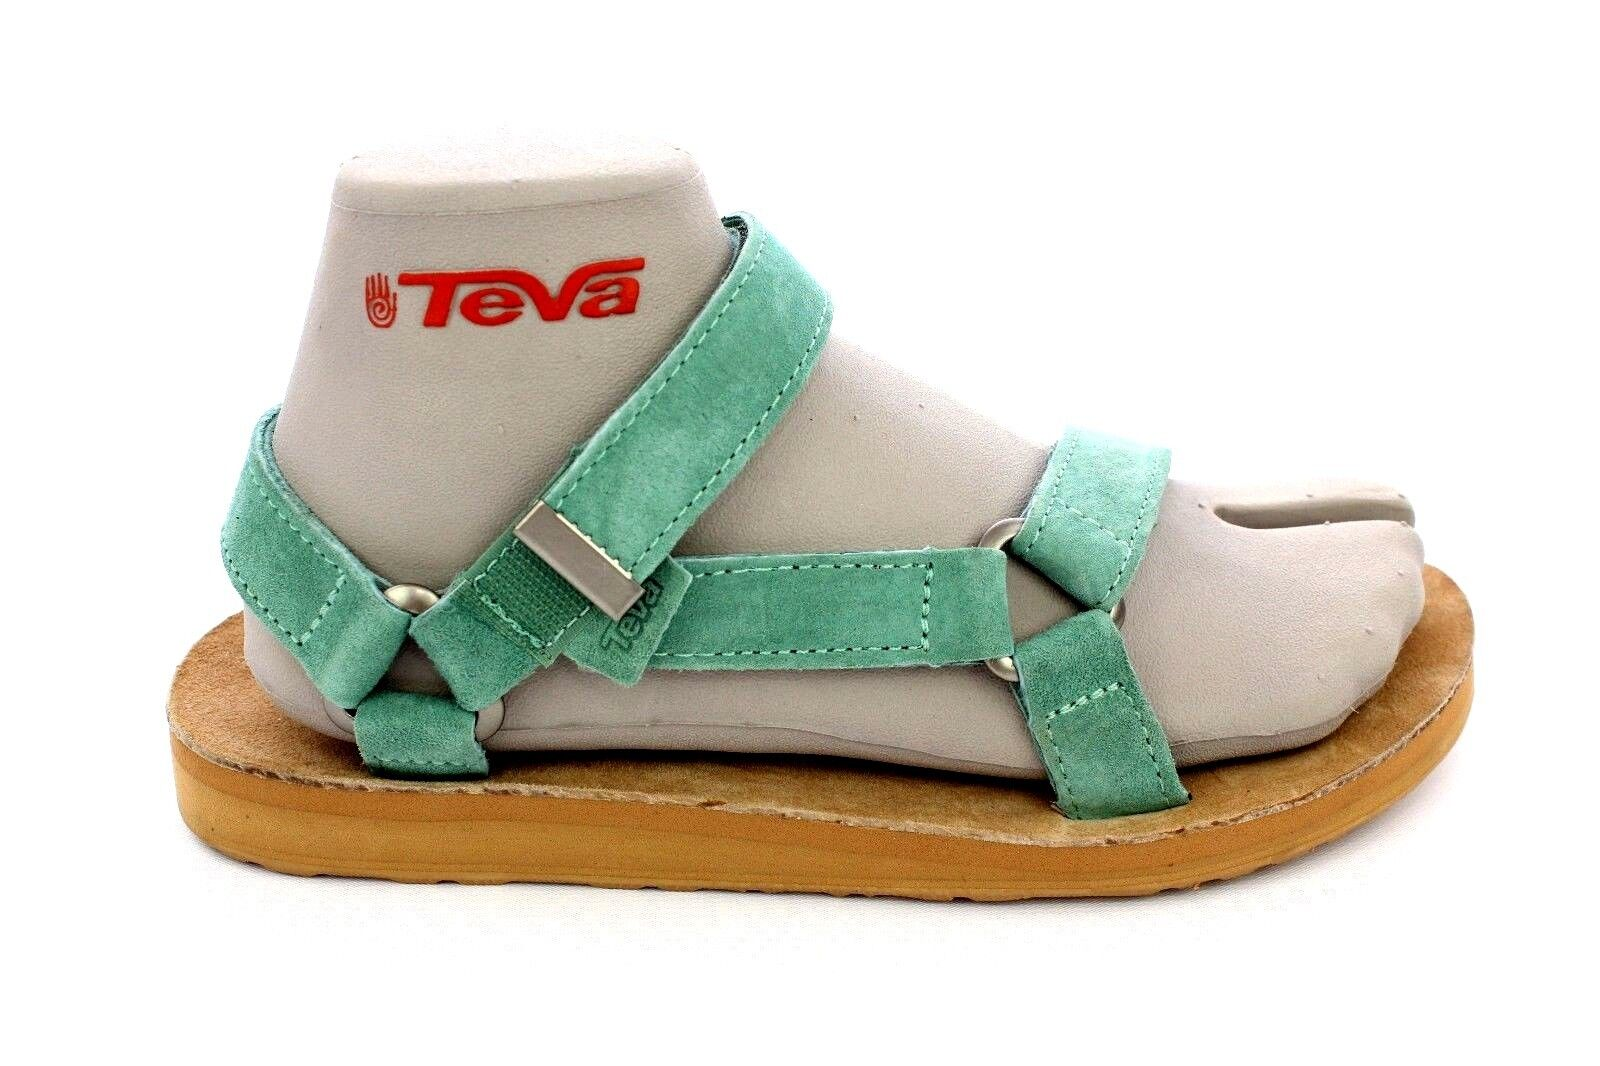 TEVA ORIGINAL UNIVERSAL SUEDE PASTEL MINT GREEN  SANDALS SIZE 9 US